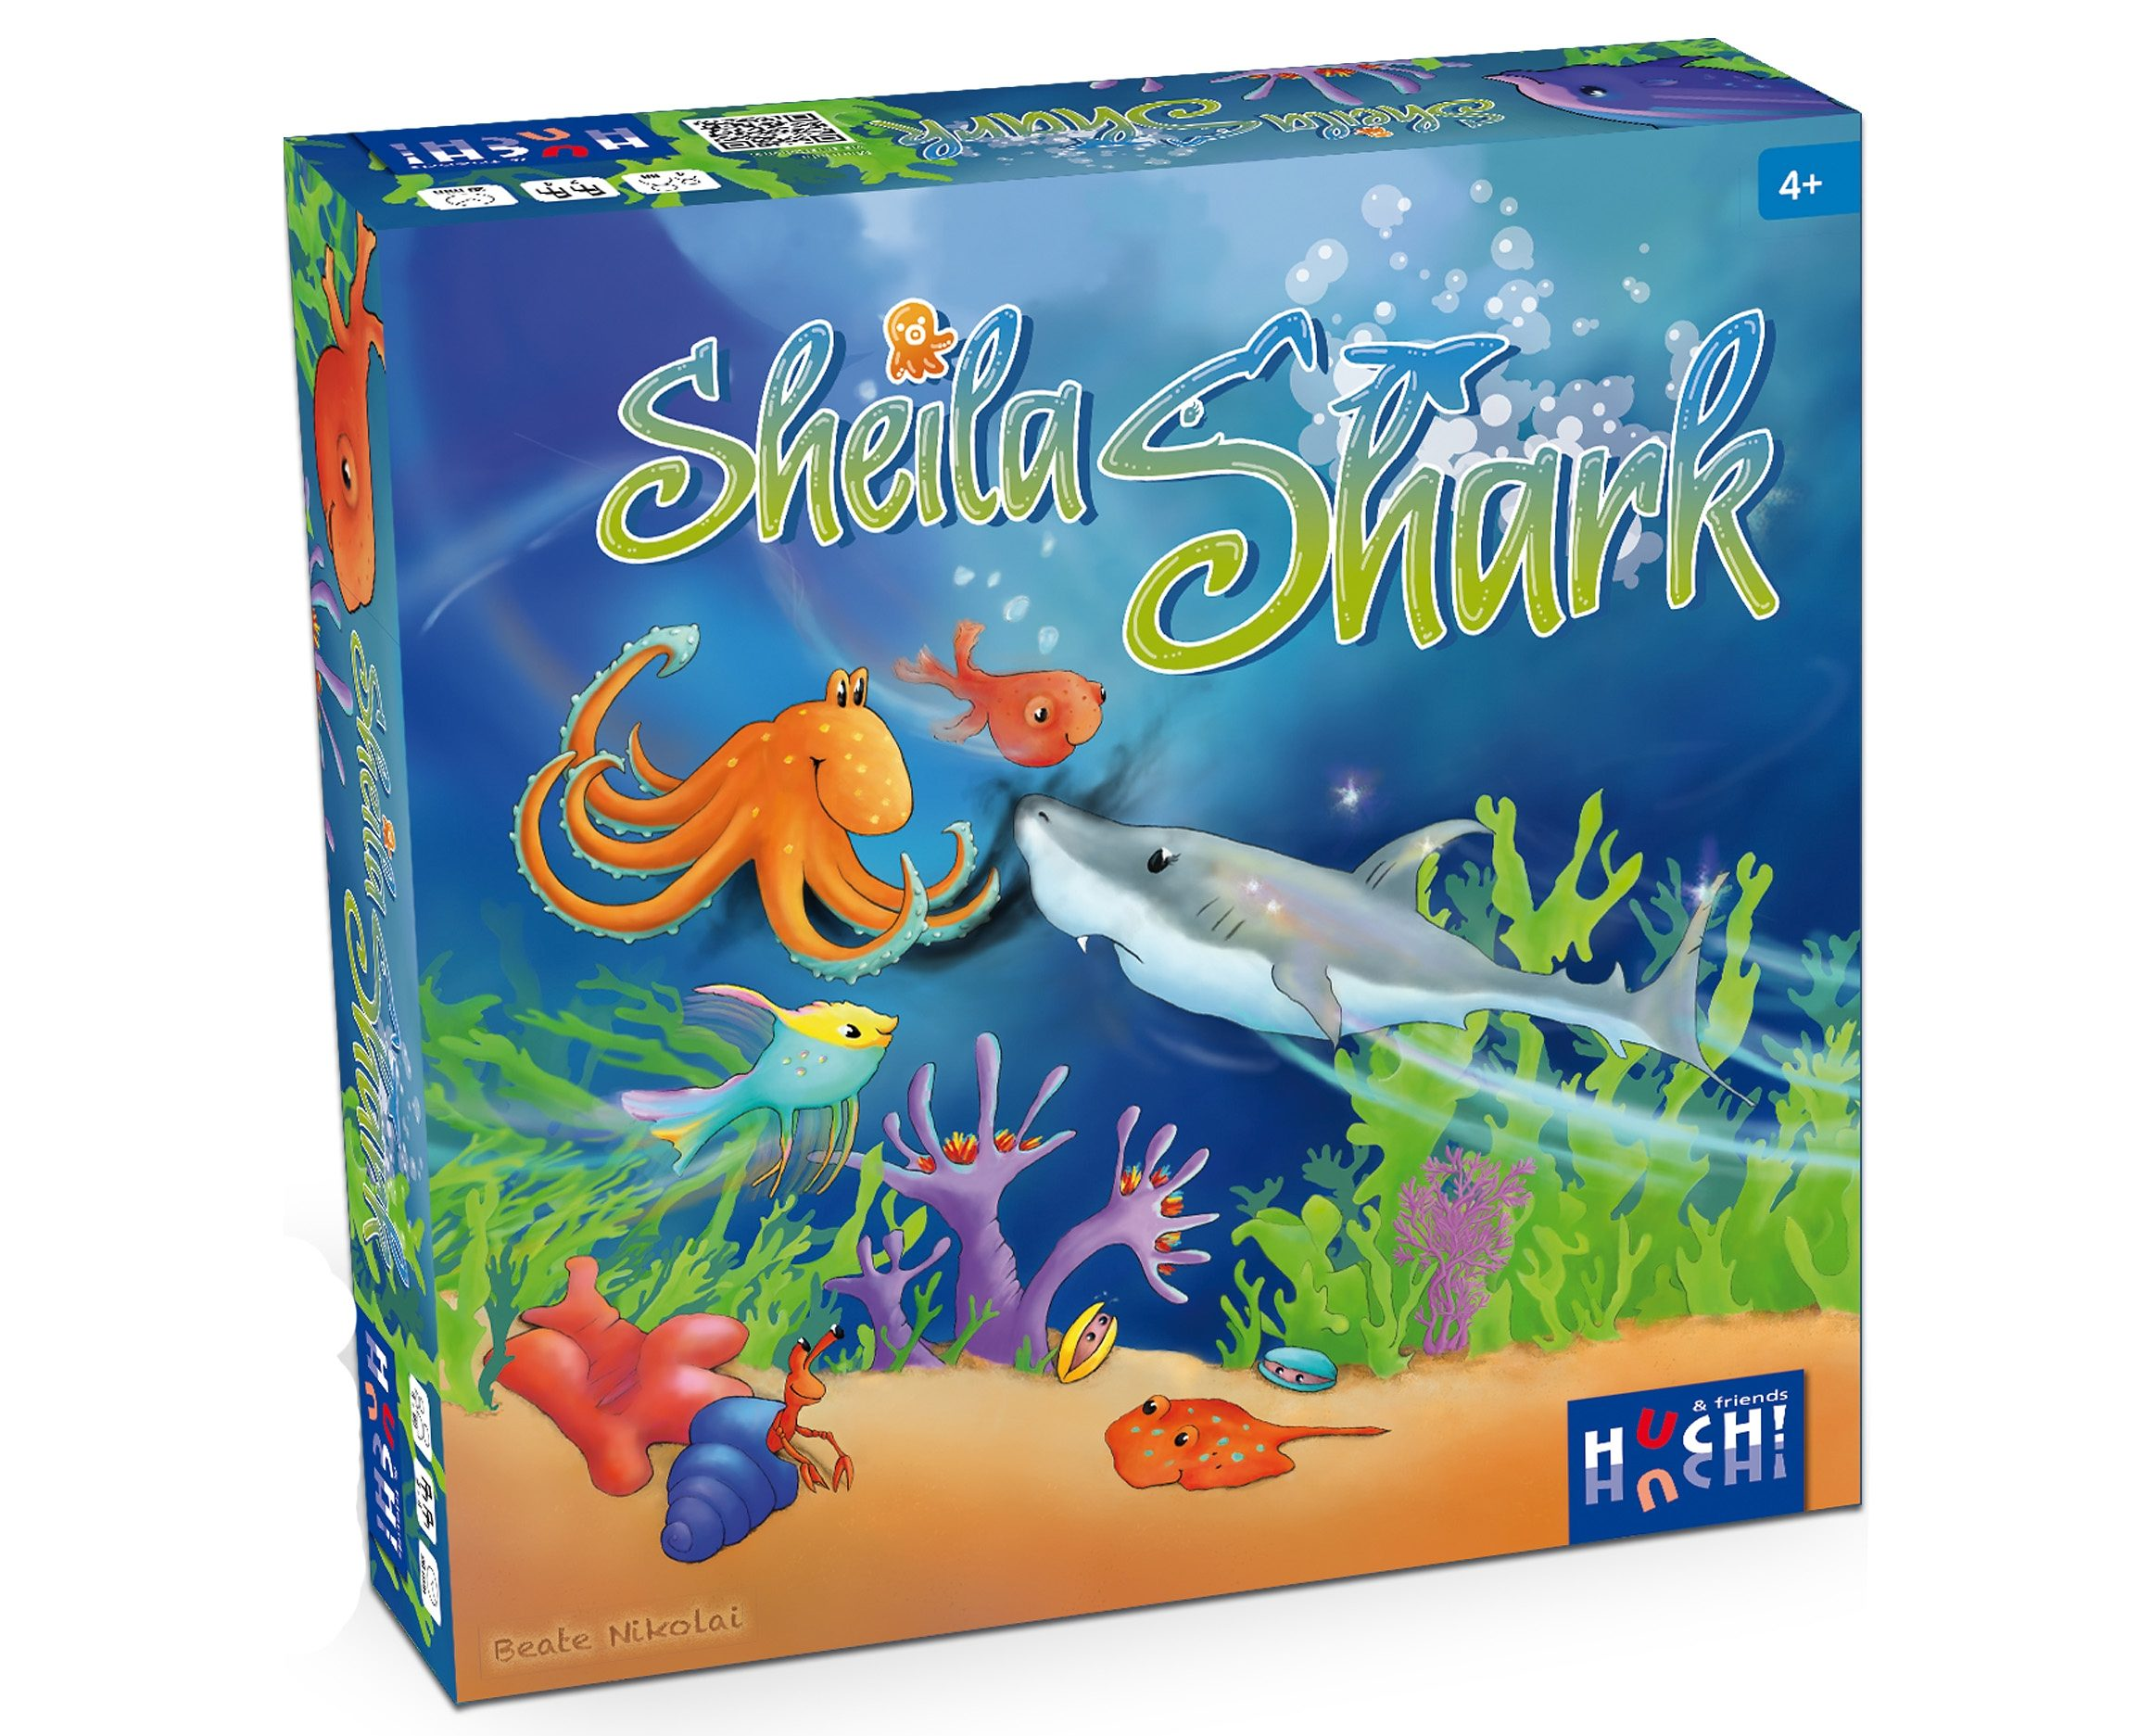 Huch! & friends Kinderspiel, »Sheila Shark«